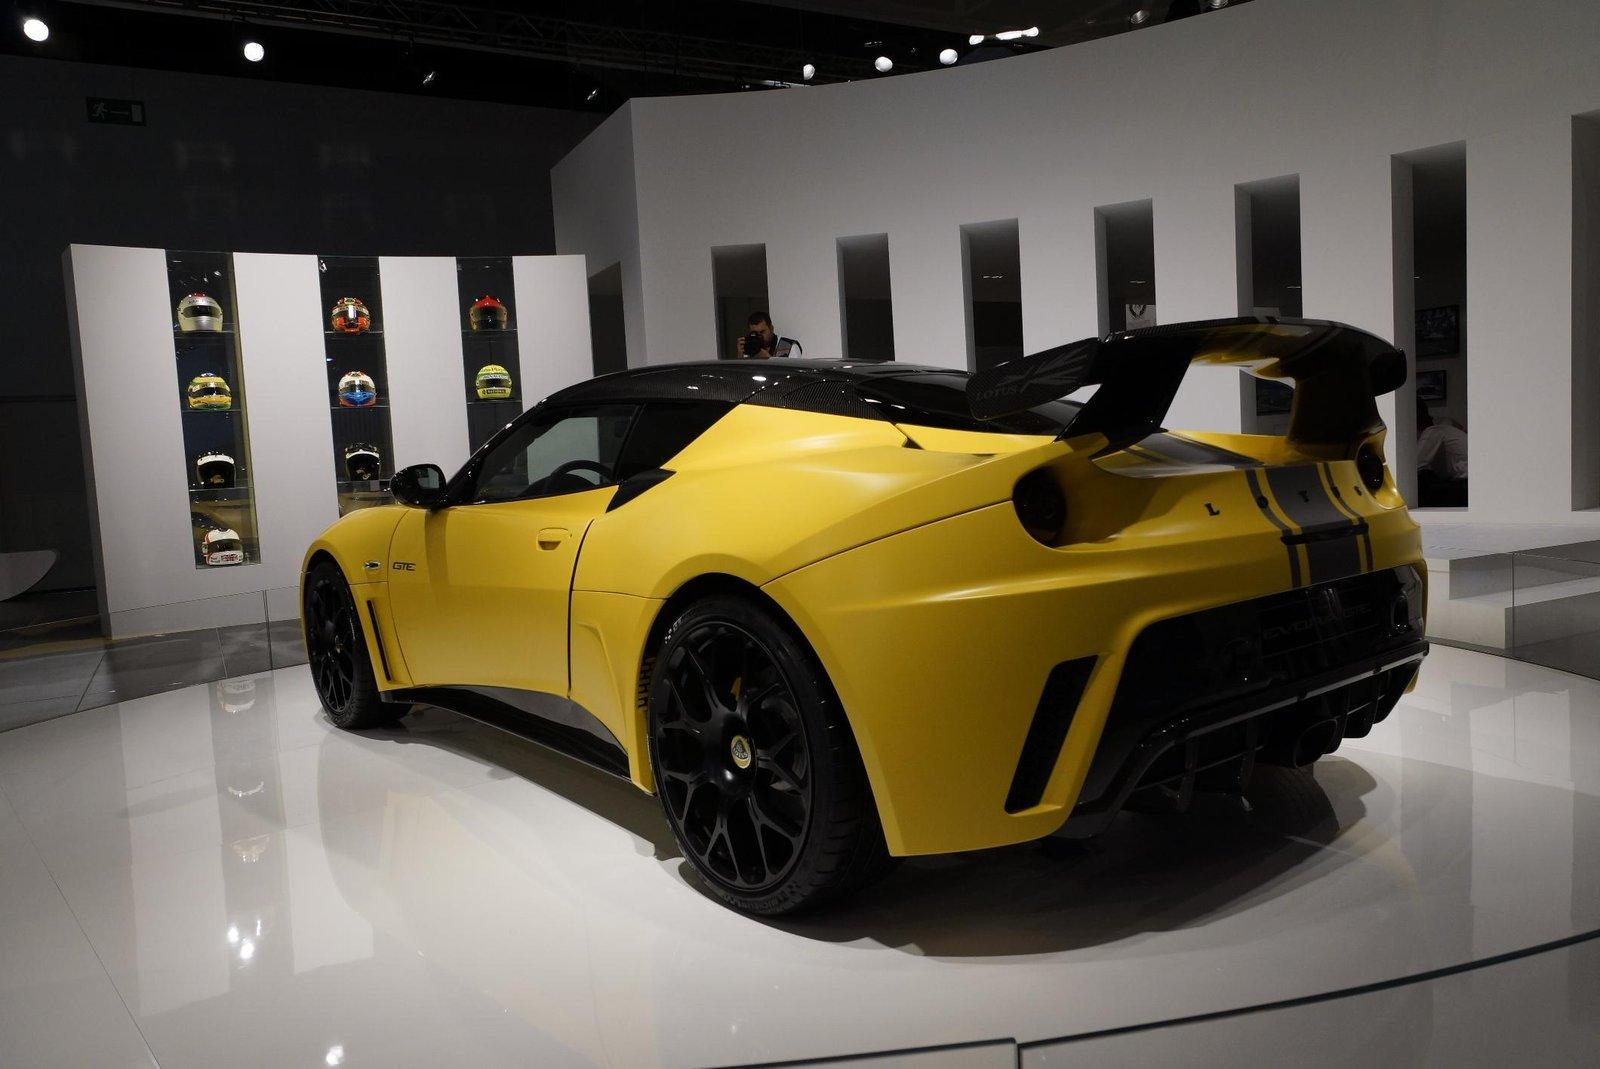 2012 Lotus Evora GTE Limited Edition 3 Limited edition 2012 Lotus Evora GTE appears in IAA Show